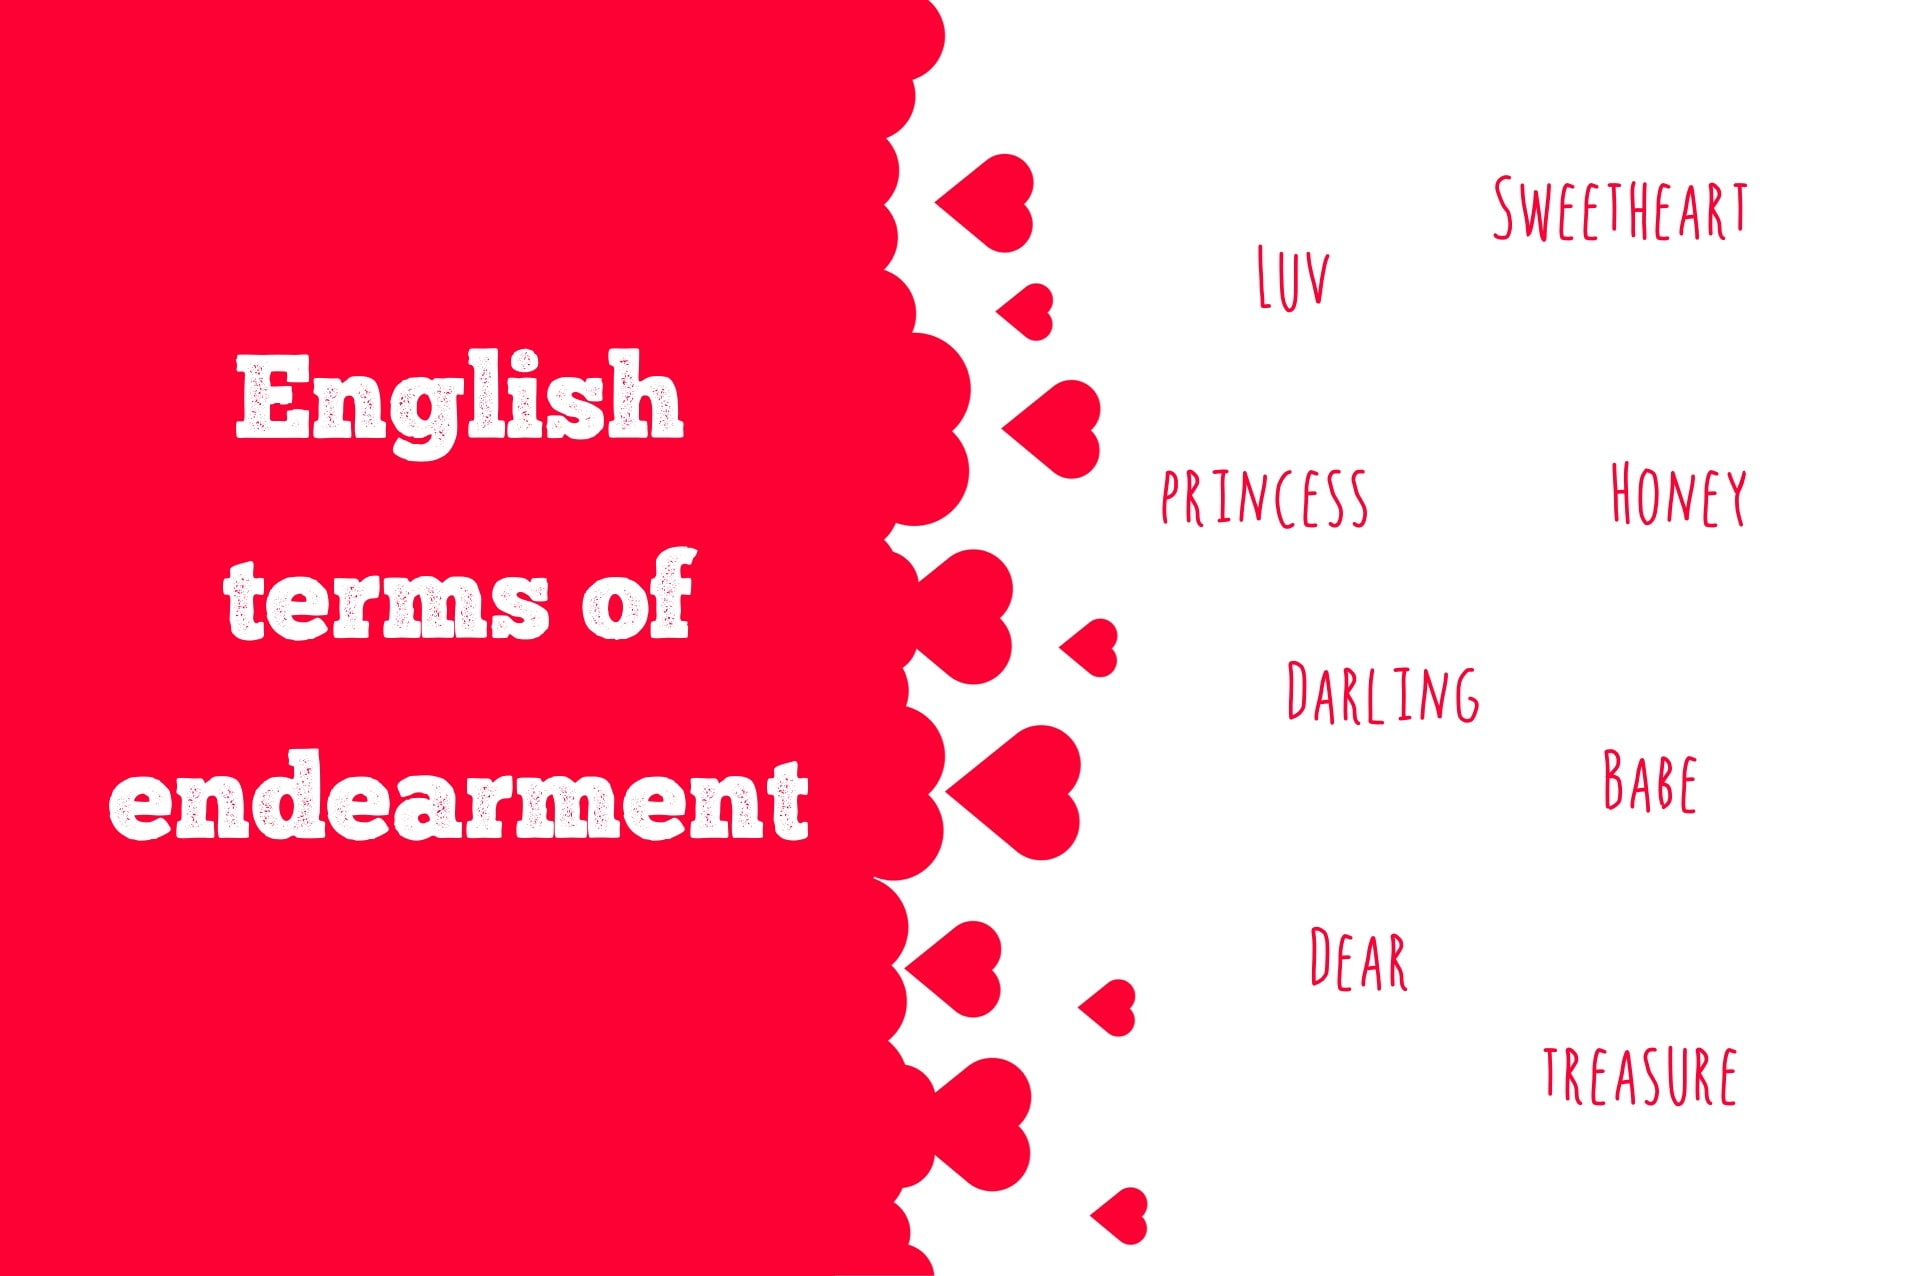 English terms of endearment used in the UK